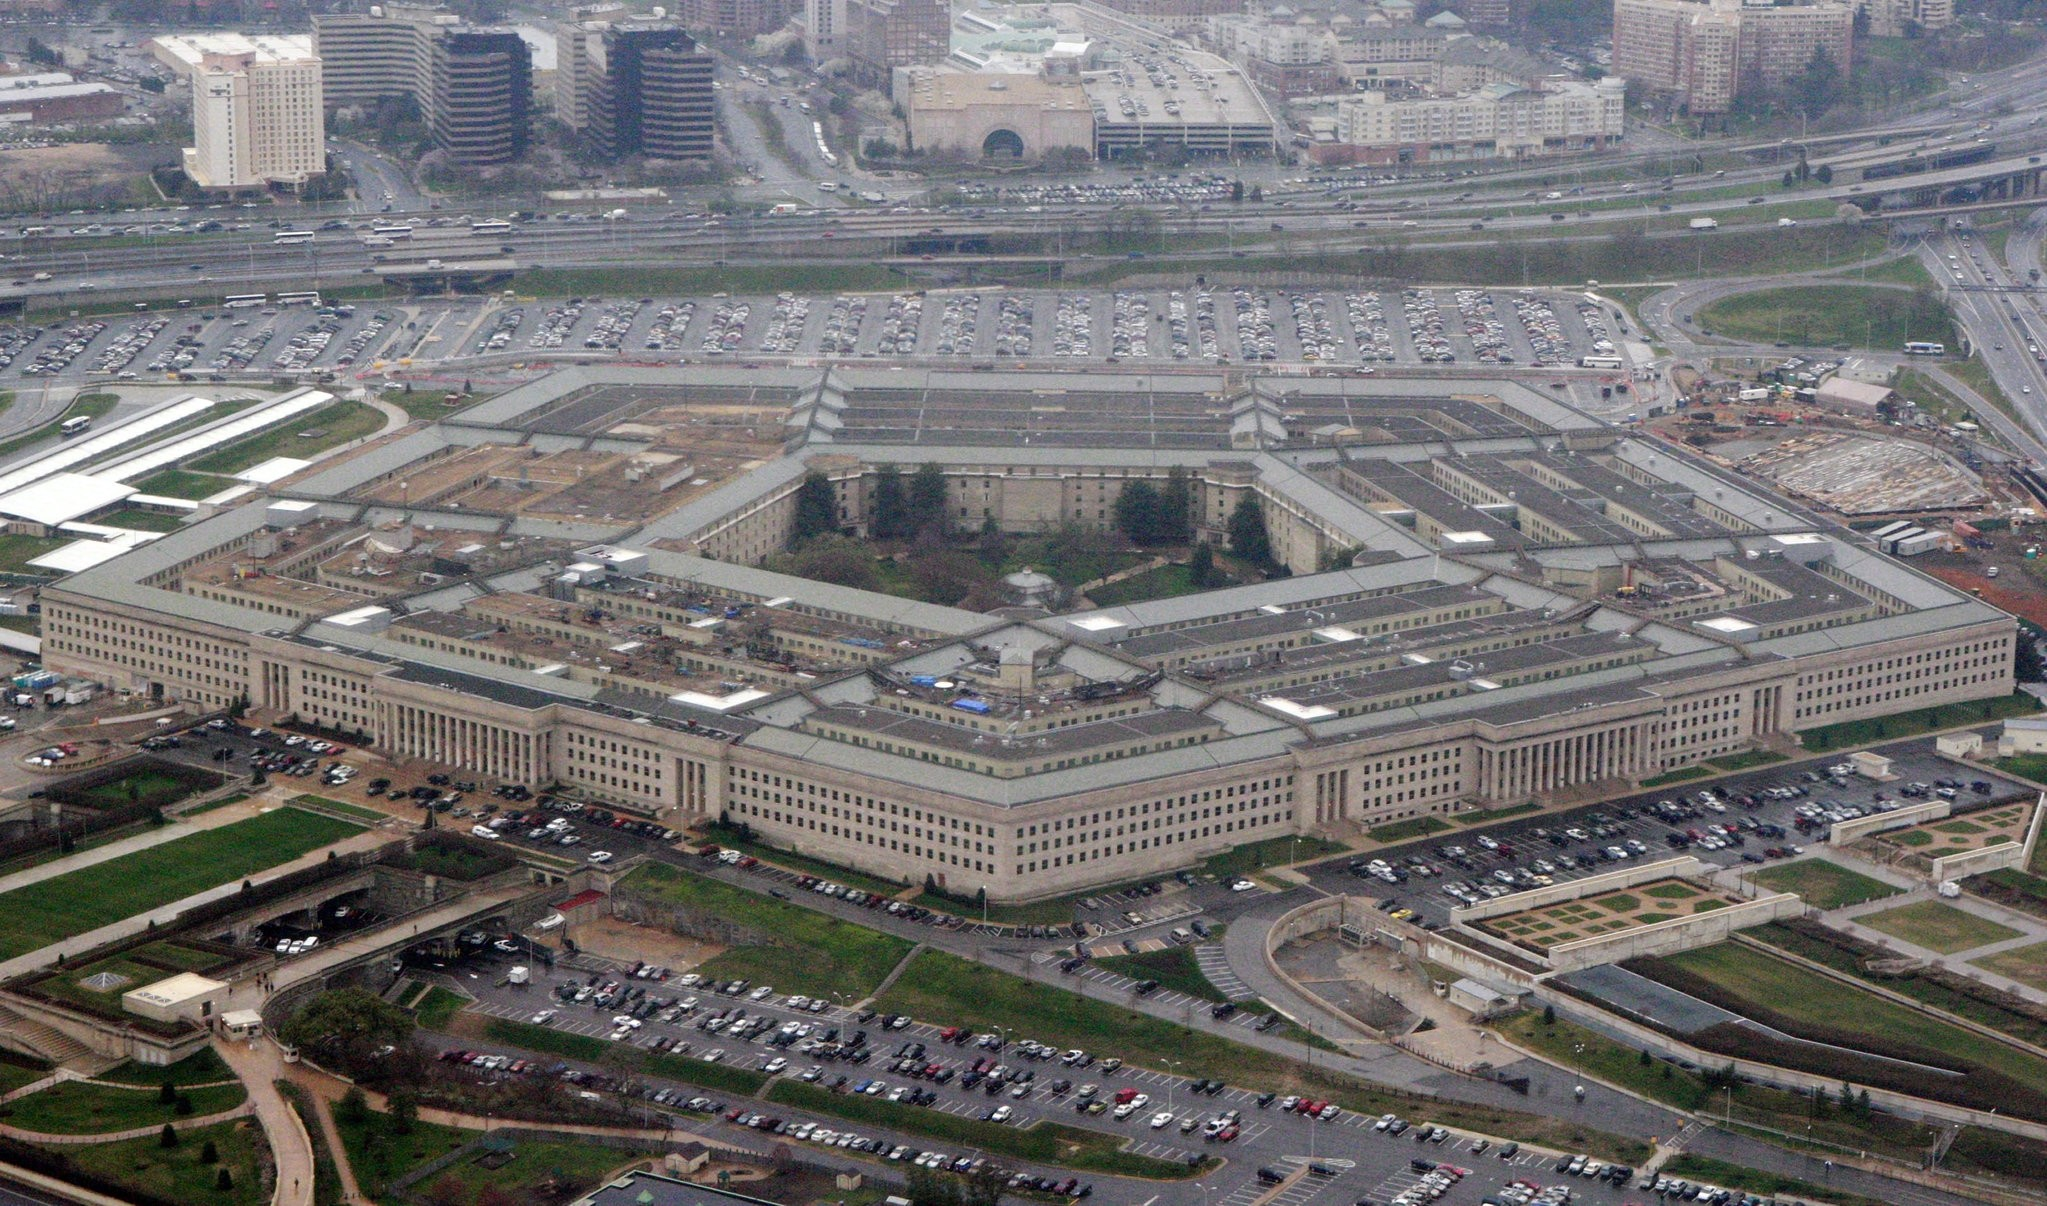 In this March 27, 2008 file photo, the Pentagon is seen in this aerial view in Washington. (AP Photo)